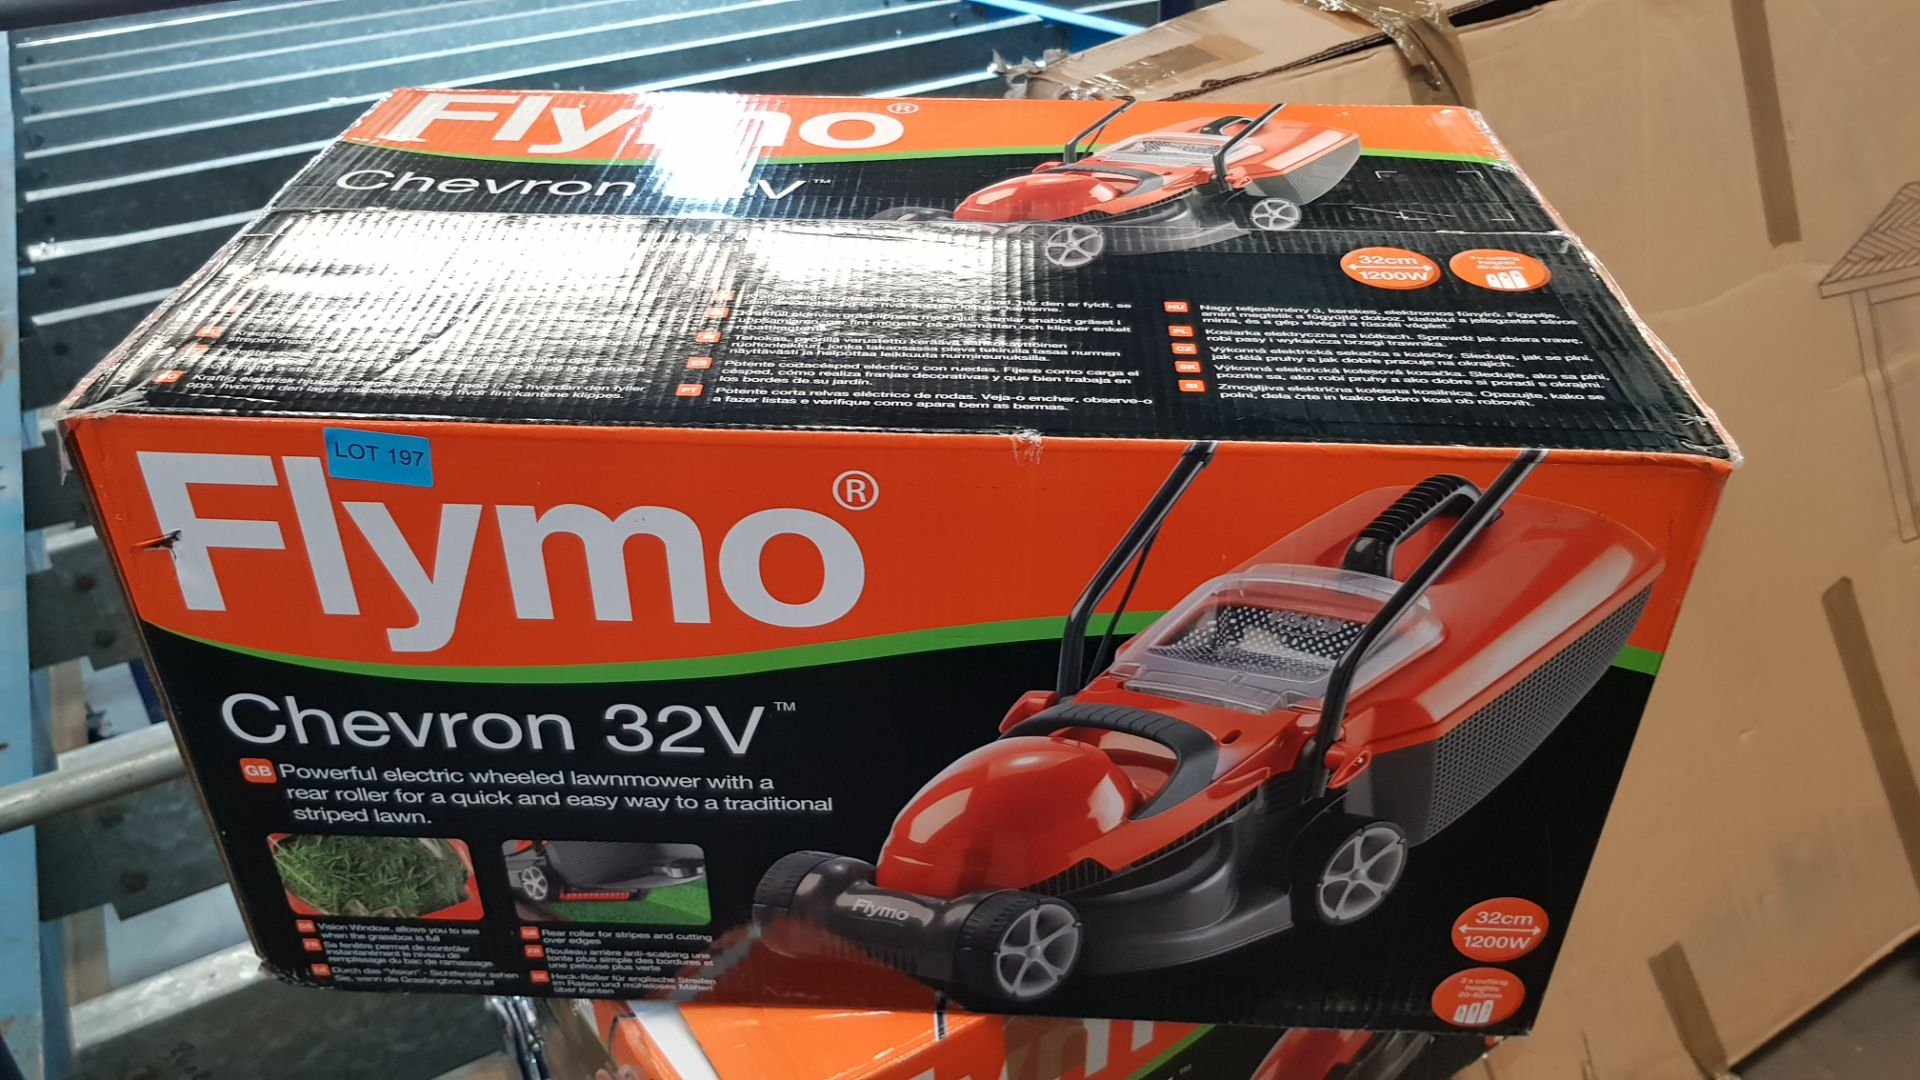 (P7) 1x Flymo Chevron 32V Electric Wheeled Lawnmower RRP £50. New, Sealed Item. - Image 3 of 3